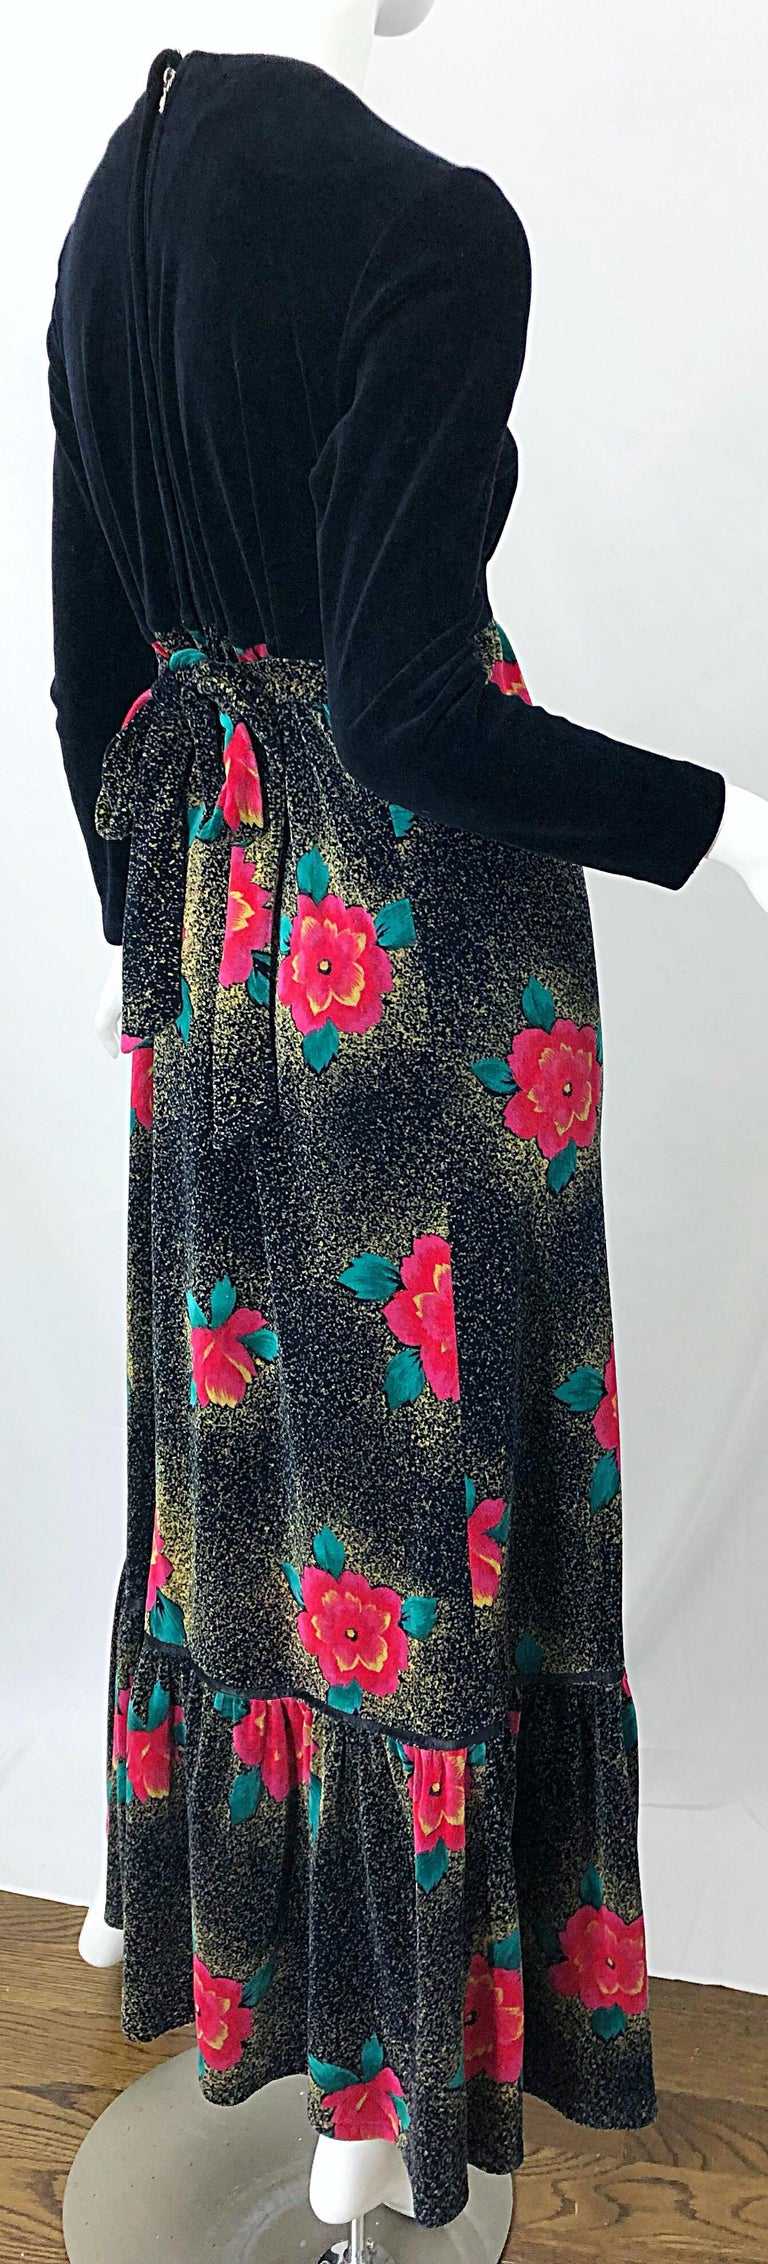 1970s Poinsettia Print Embroidered Beaded Velvet Velour Holiday Maxi Dress Gown For Sale 5